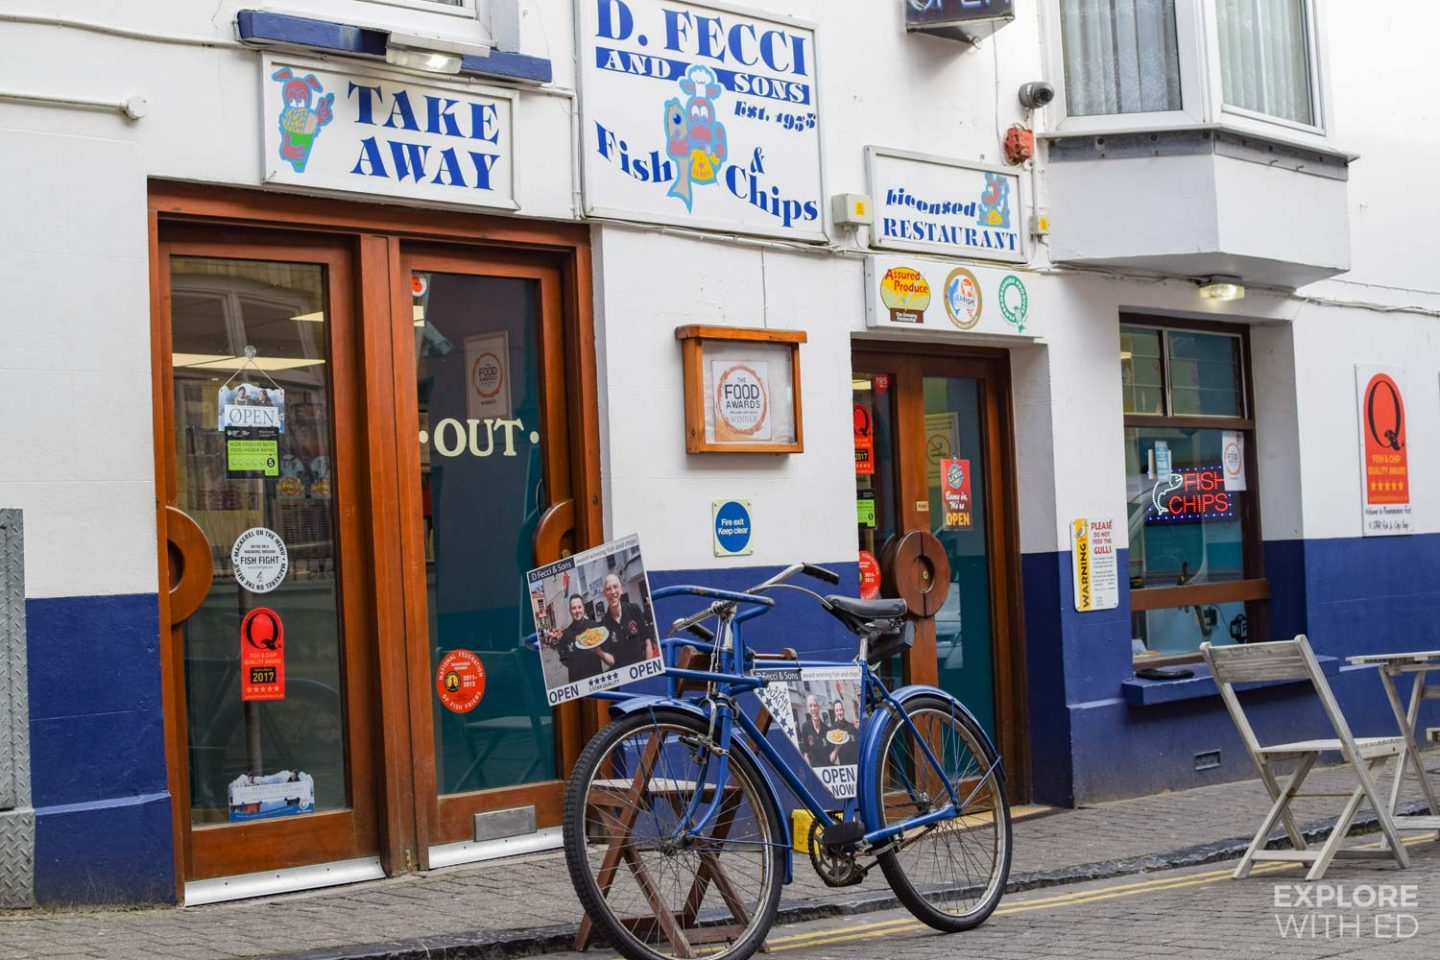 D. Fecci and Sons fish and chip shop in Tenby, Wales